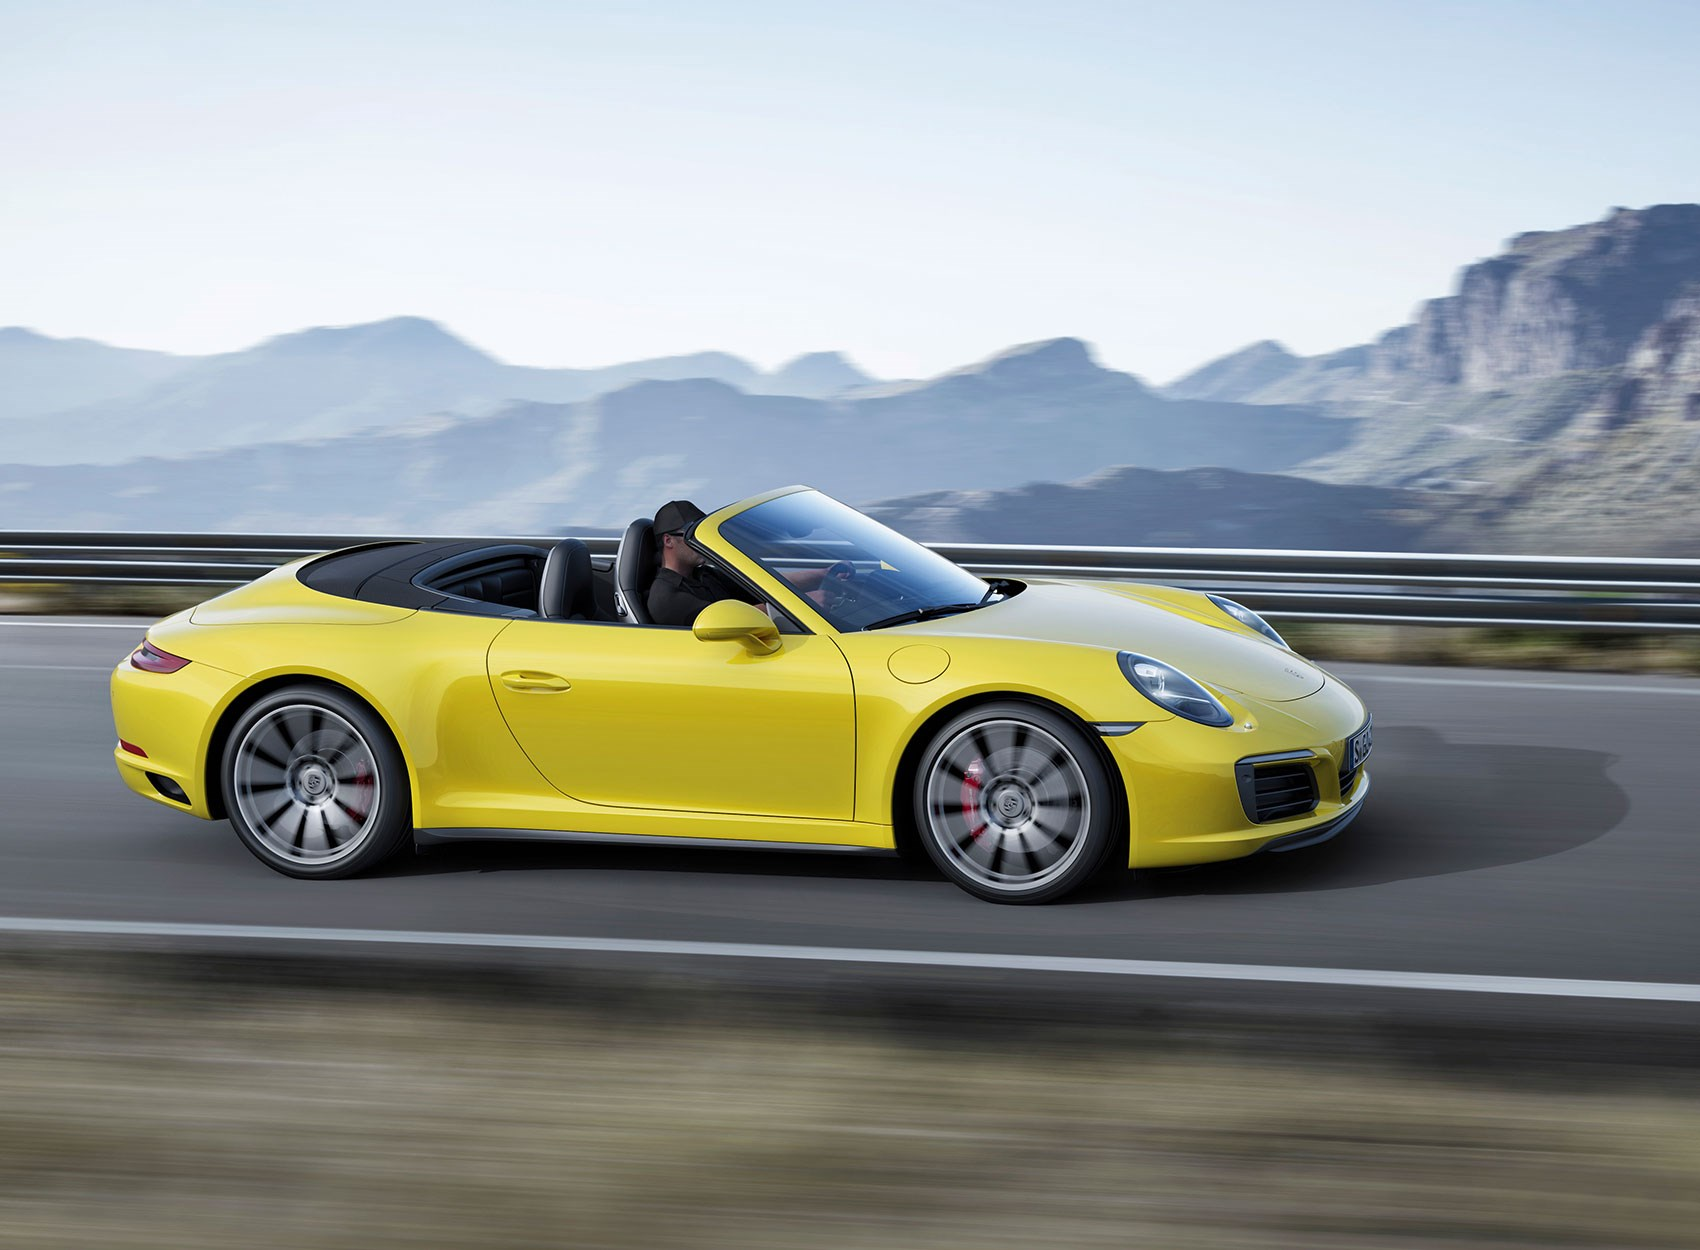 turbo turbo ber alles 2016 carrera 4 and targa 4 join porsche 911 revolution by car magazine. Black Bedroom Furniture Sets. Home Design Ideas